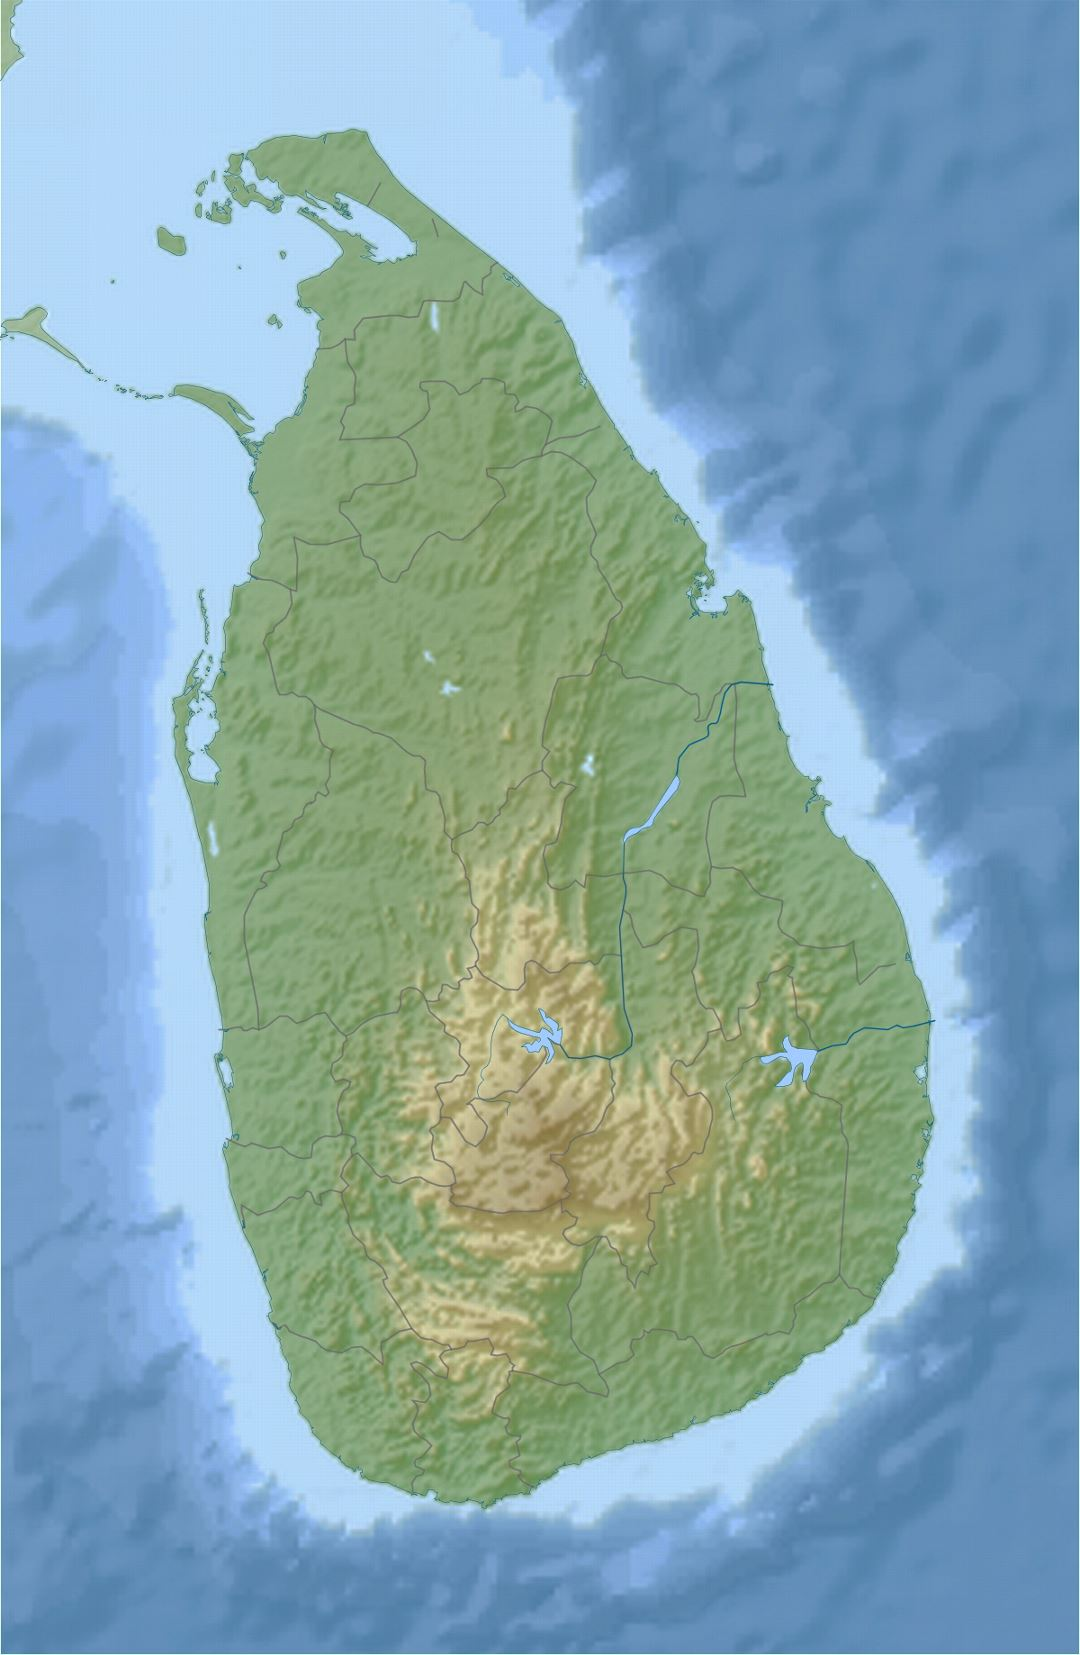 Detailed relief map of Sri Lanka